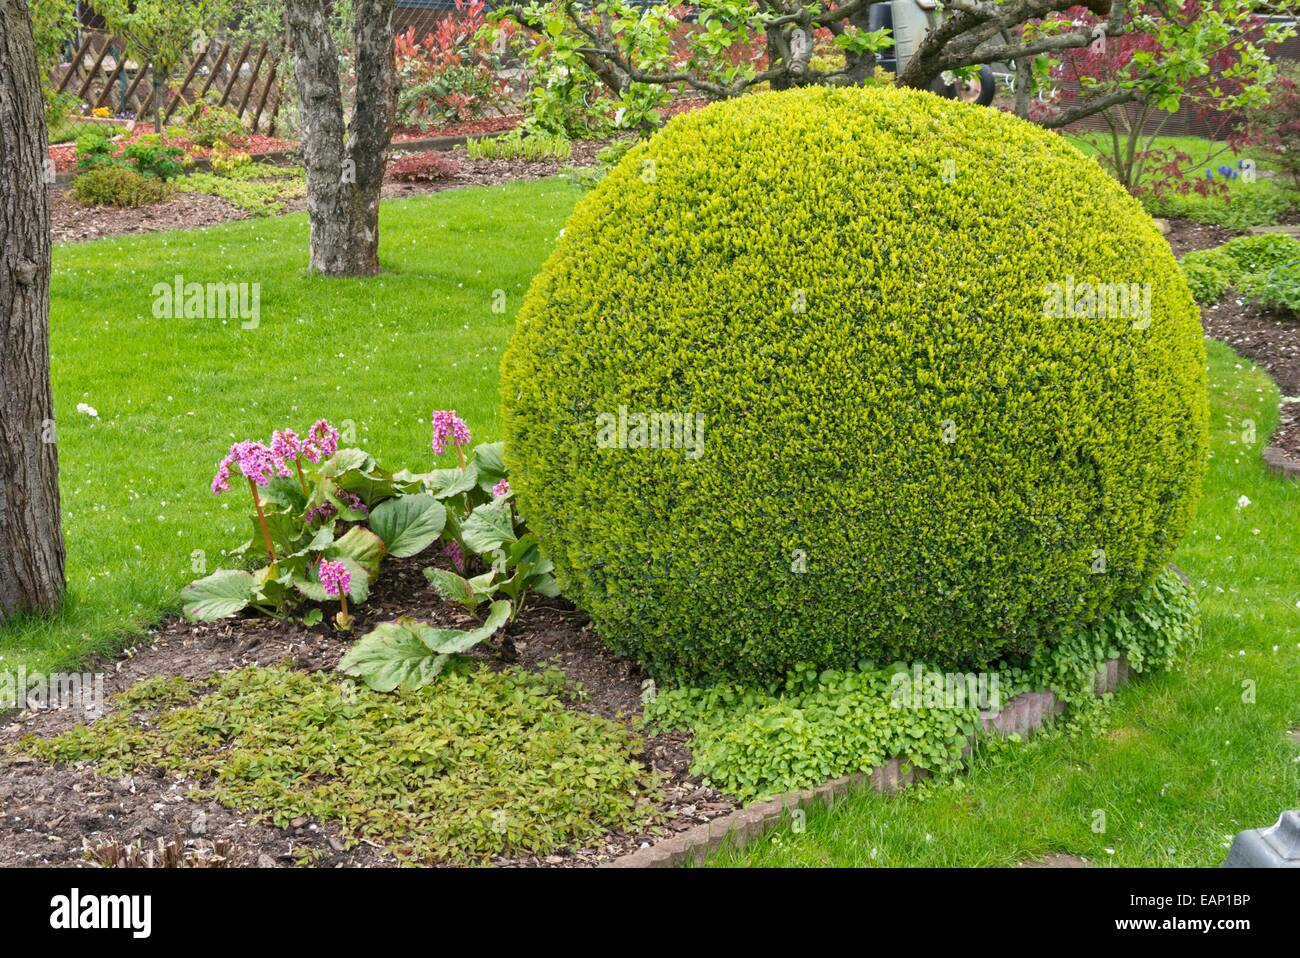 Boxwood Balls Stock Photos Boxwood Balls Stock Images Alamy